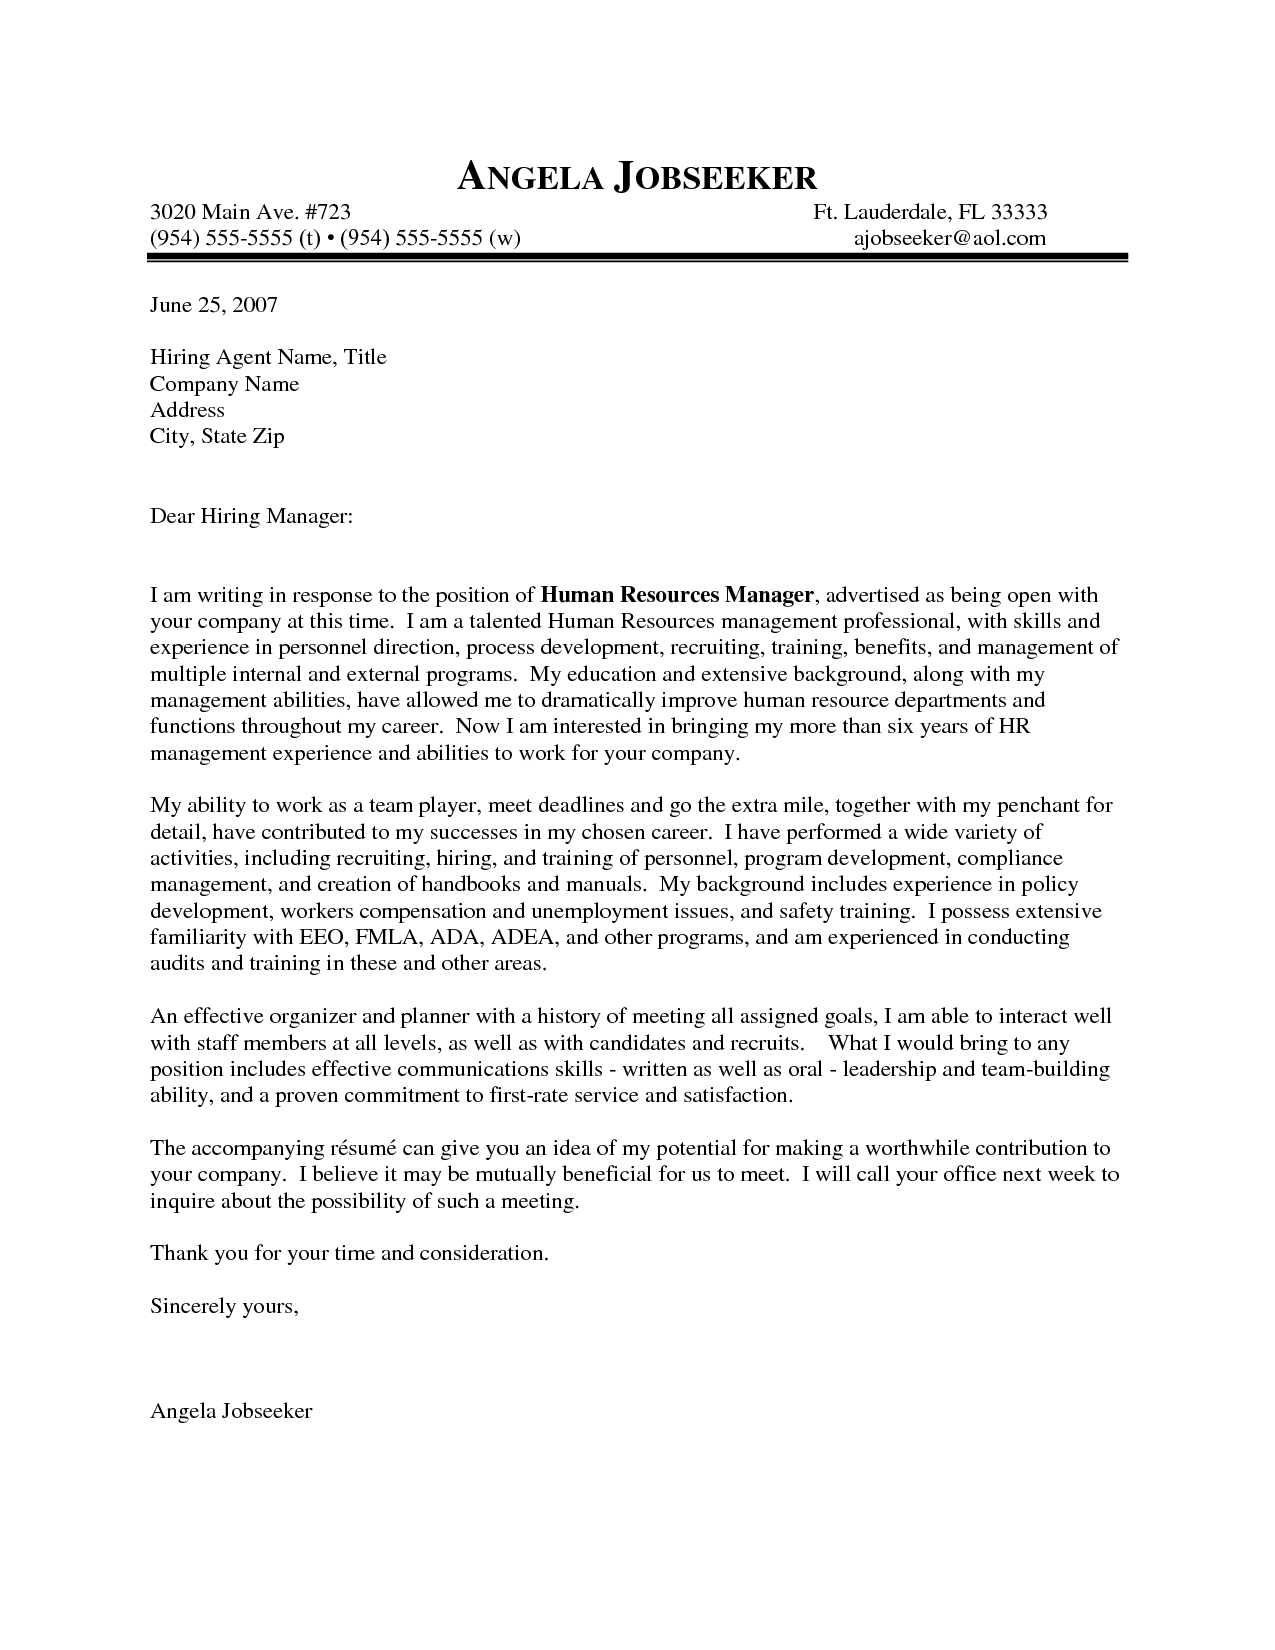 Cover Letter Template Human Resources | resume and cover letter ...